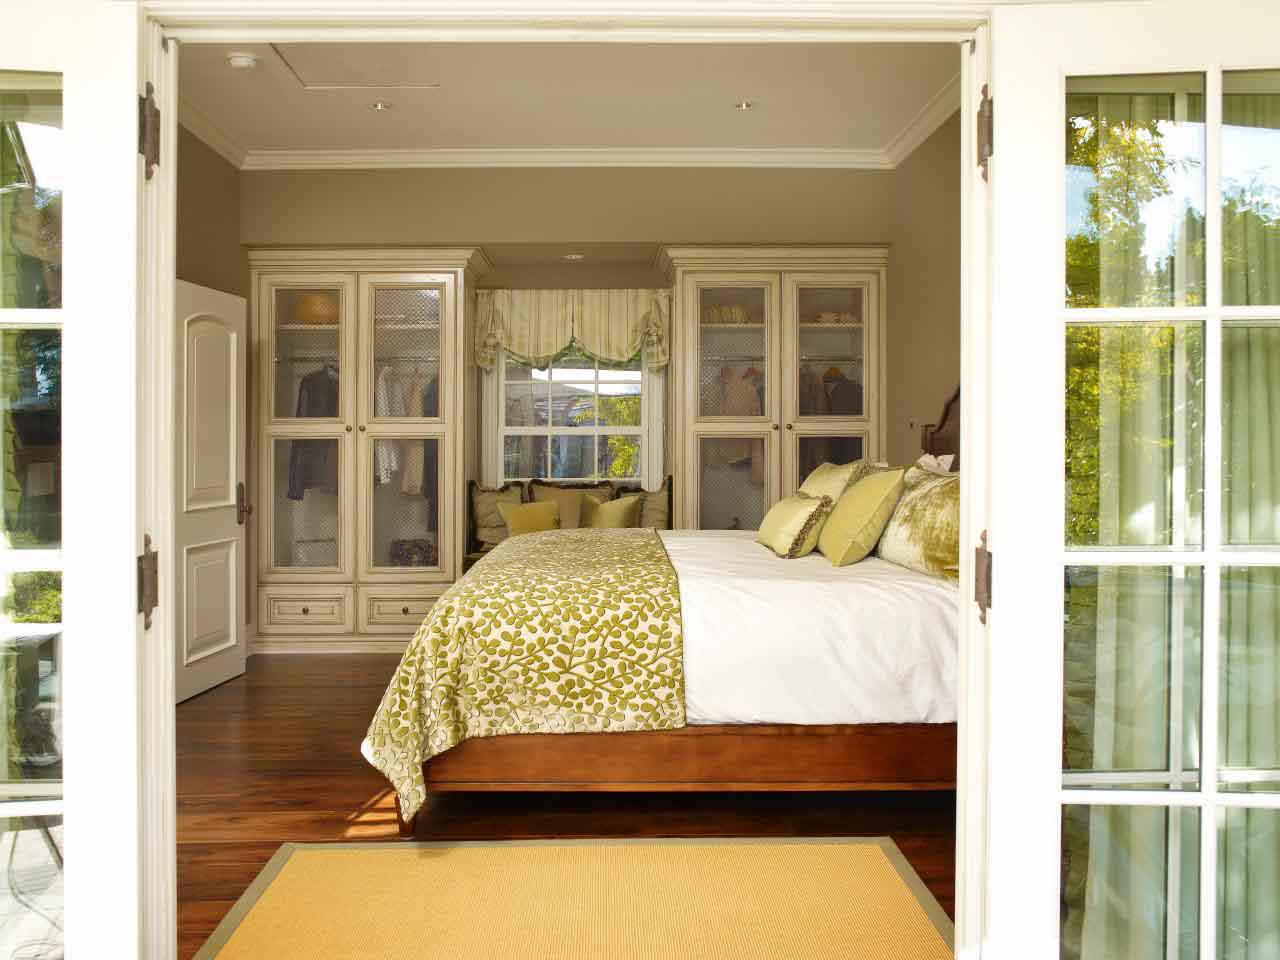 window clever ideas bedroom design around of with bench build out storage wardrobe reading bedrooms for the space box